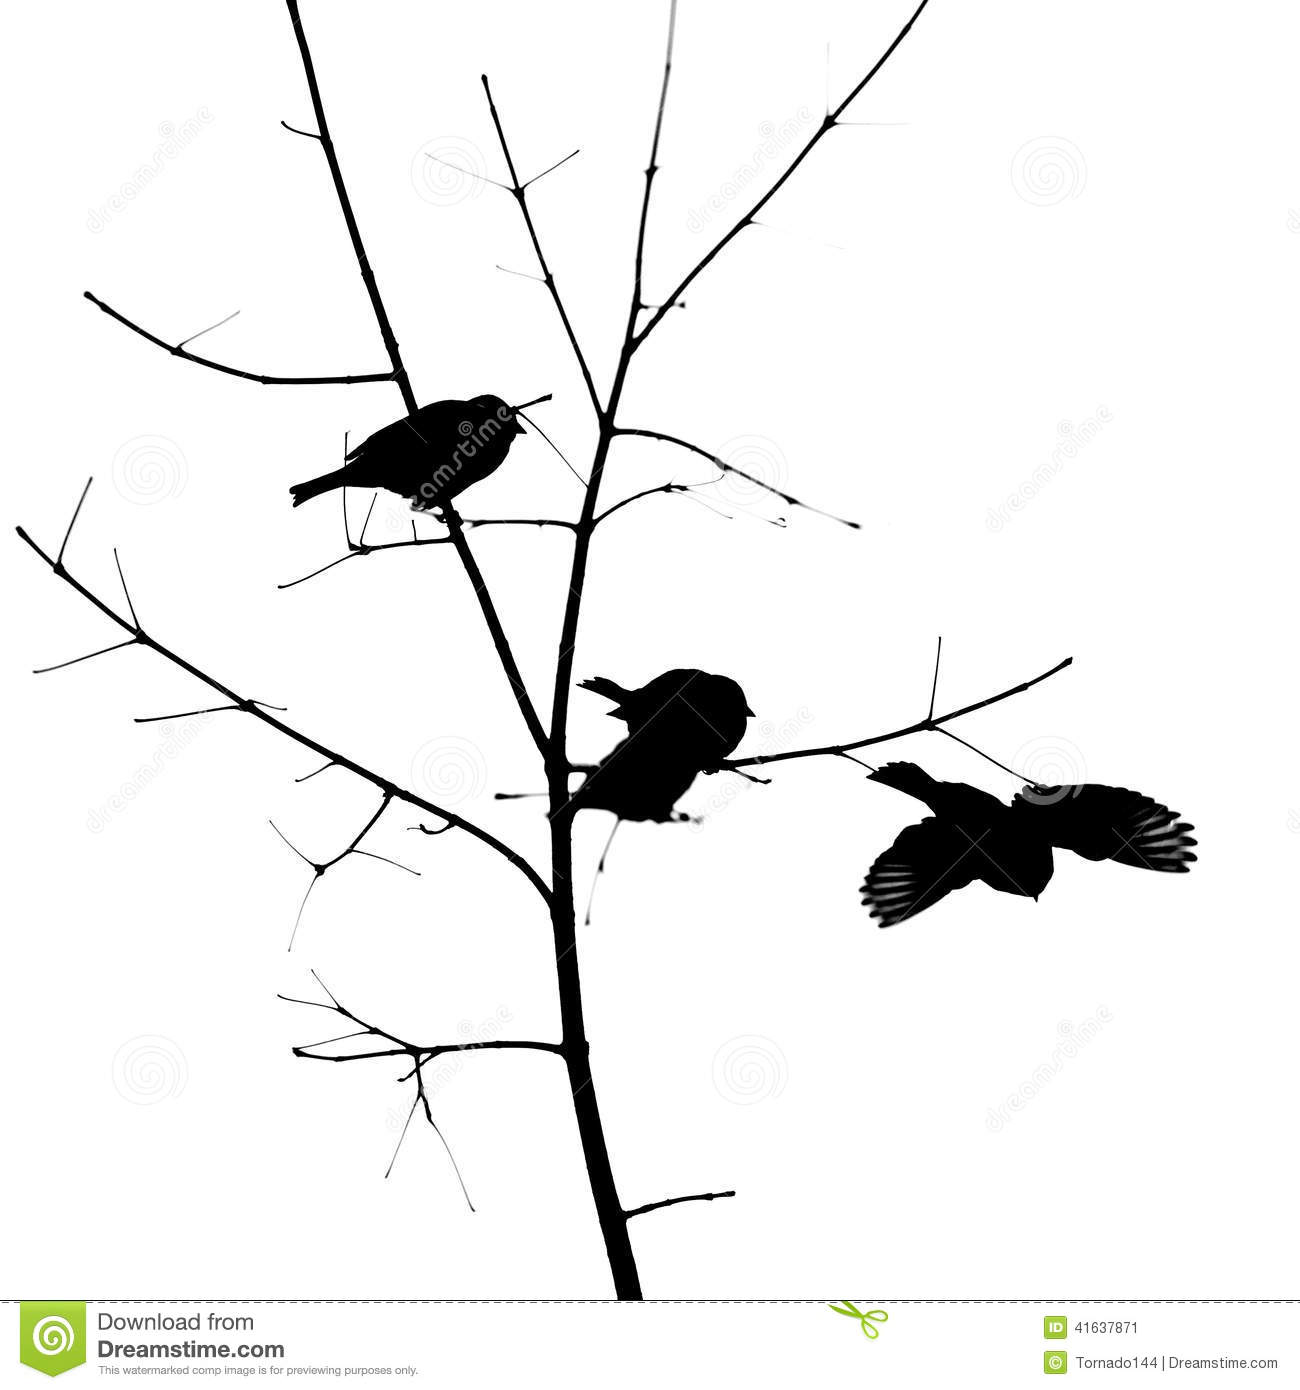 Birds Silhouettes Stock Photo - Image: 41637871